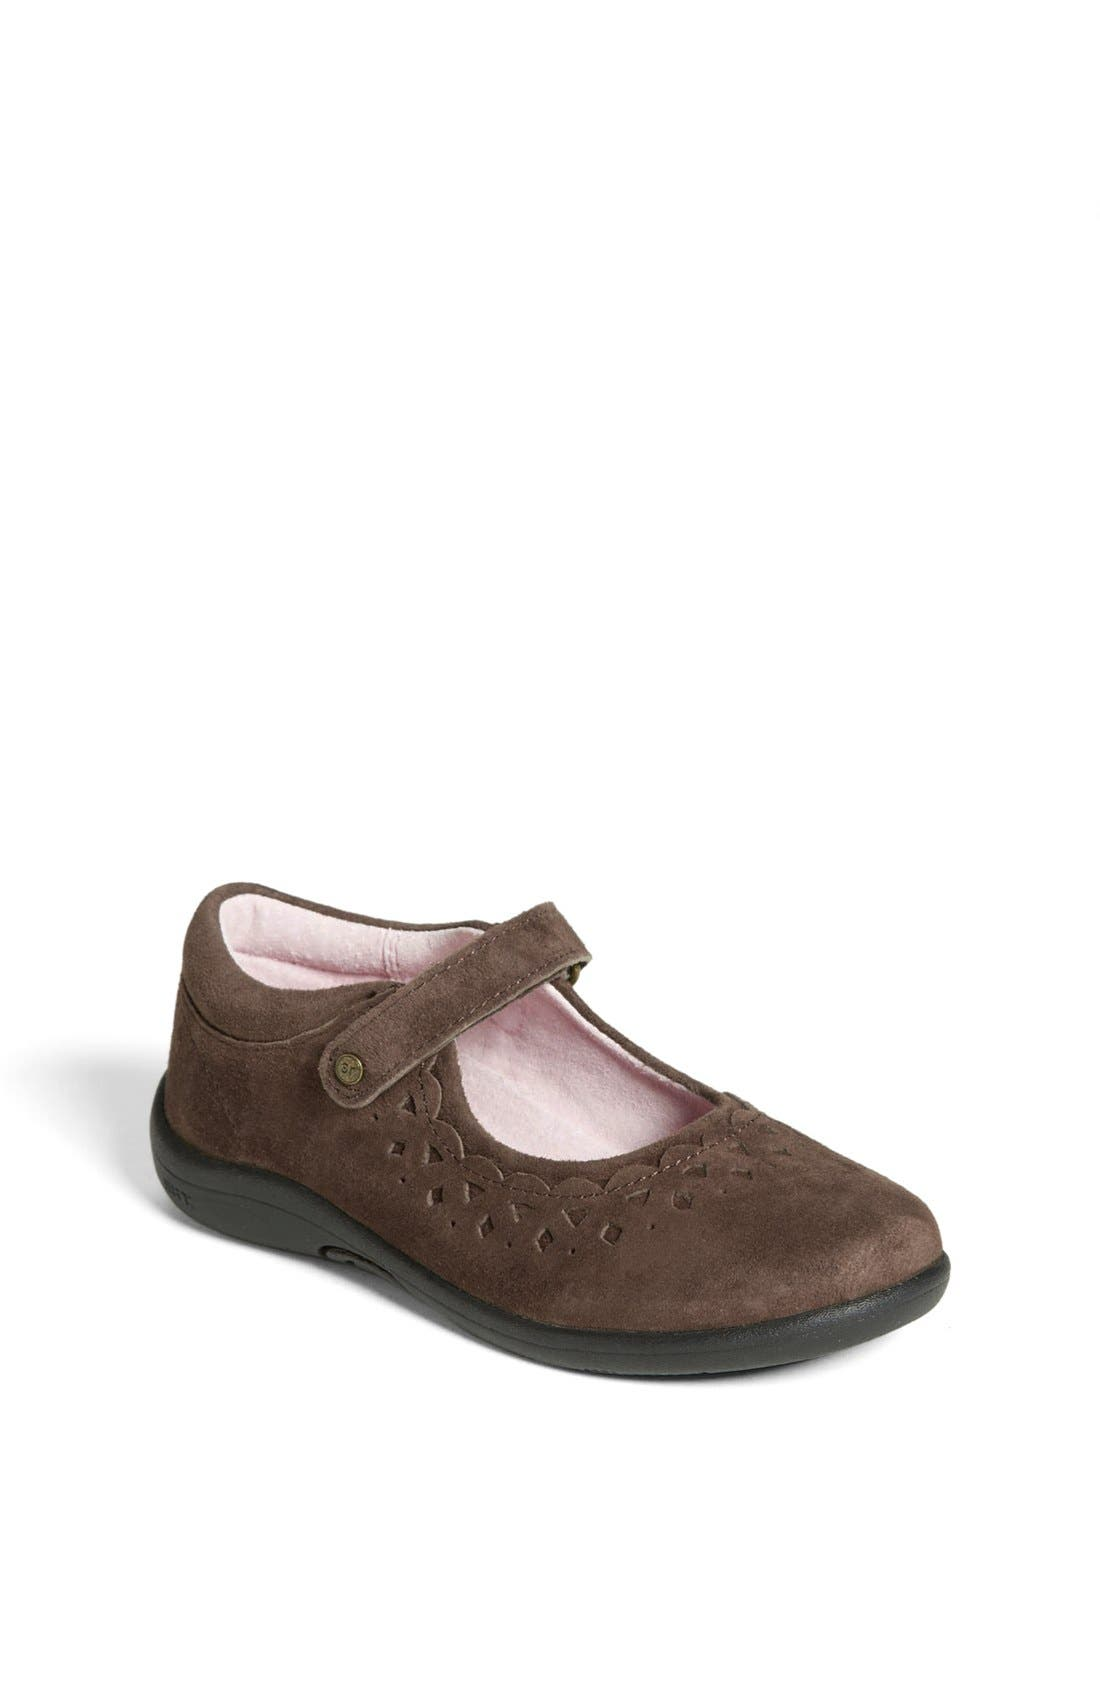 Main Image - Stride Rite 'Cora' Mary Jane (Online Only) (Toddler & Little Kid)